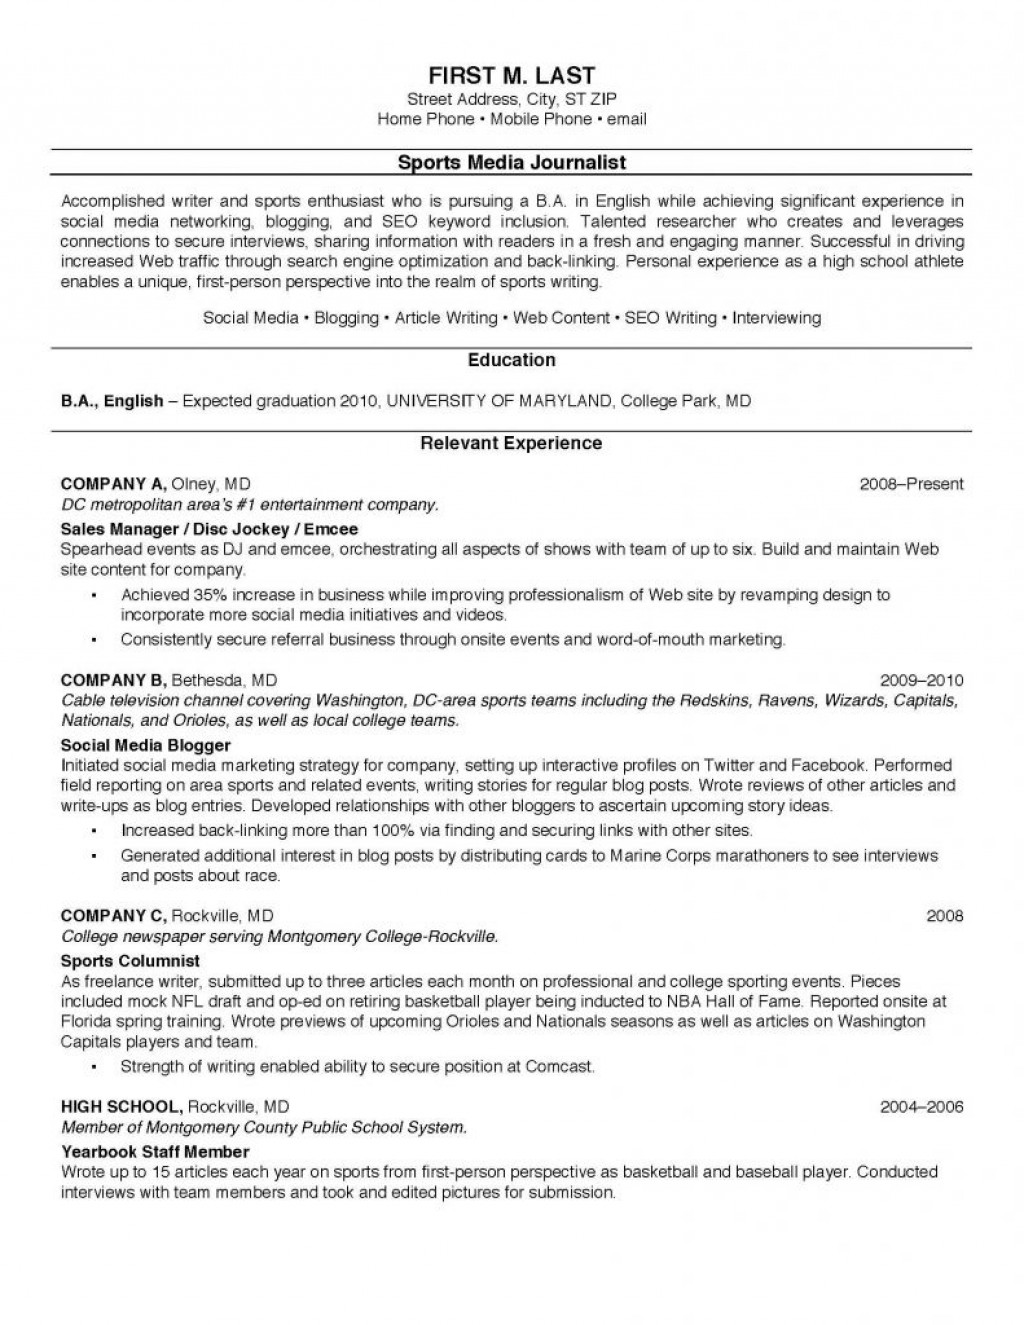 009 Resume Sample For College Students Example Student Template Http Of 791x1024 Descriptive Essay Exceptional Topics Writing Ibps Po Mains High School Prompts Large